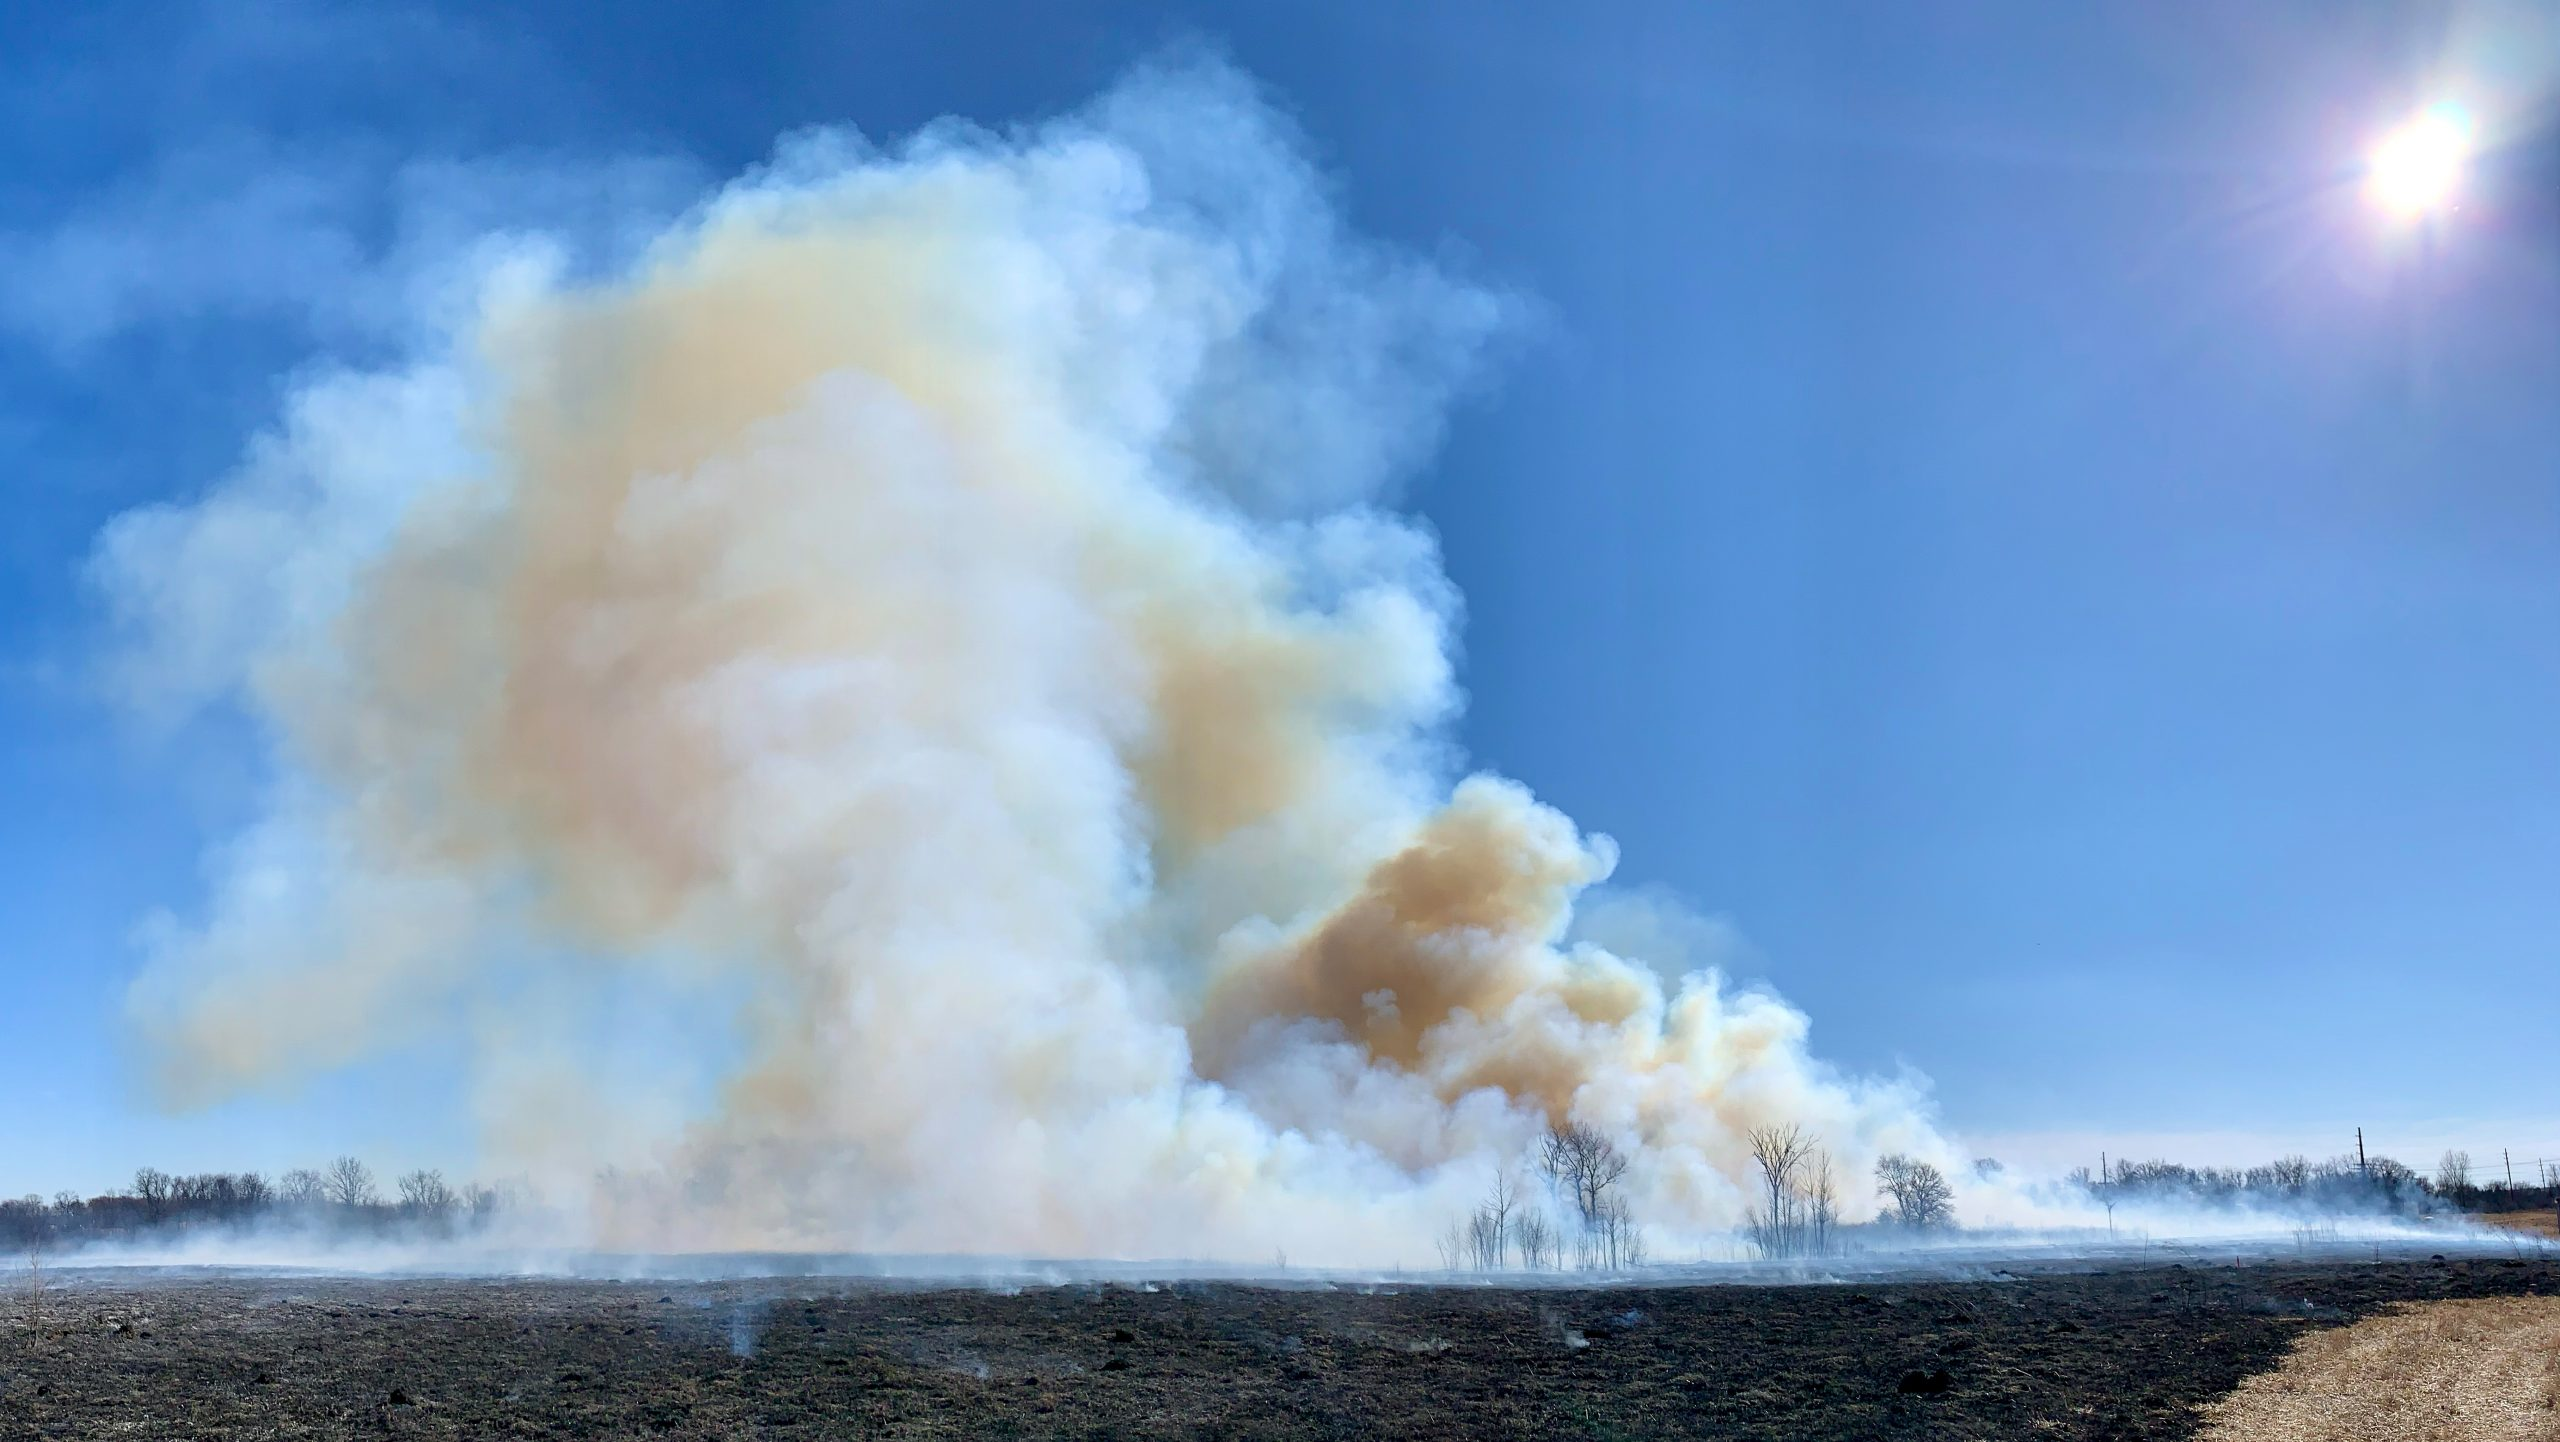 Fermilab Roads and Grounds conducts a prairie burn inside the Main Injector on March 5. The trees on the right side of the plume are 20-plus feet tall. nature, landscape, fire, prairie, sky, sun Photo: Marty Murphy